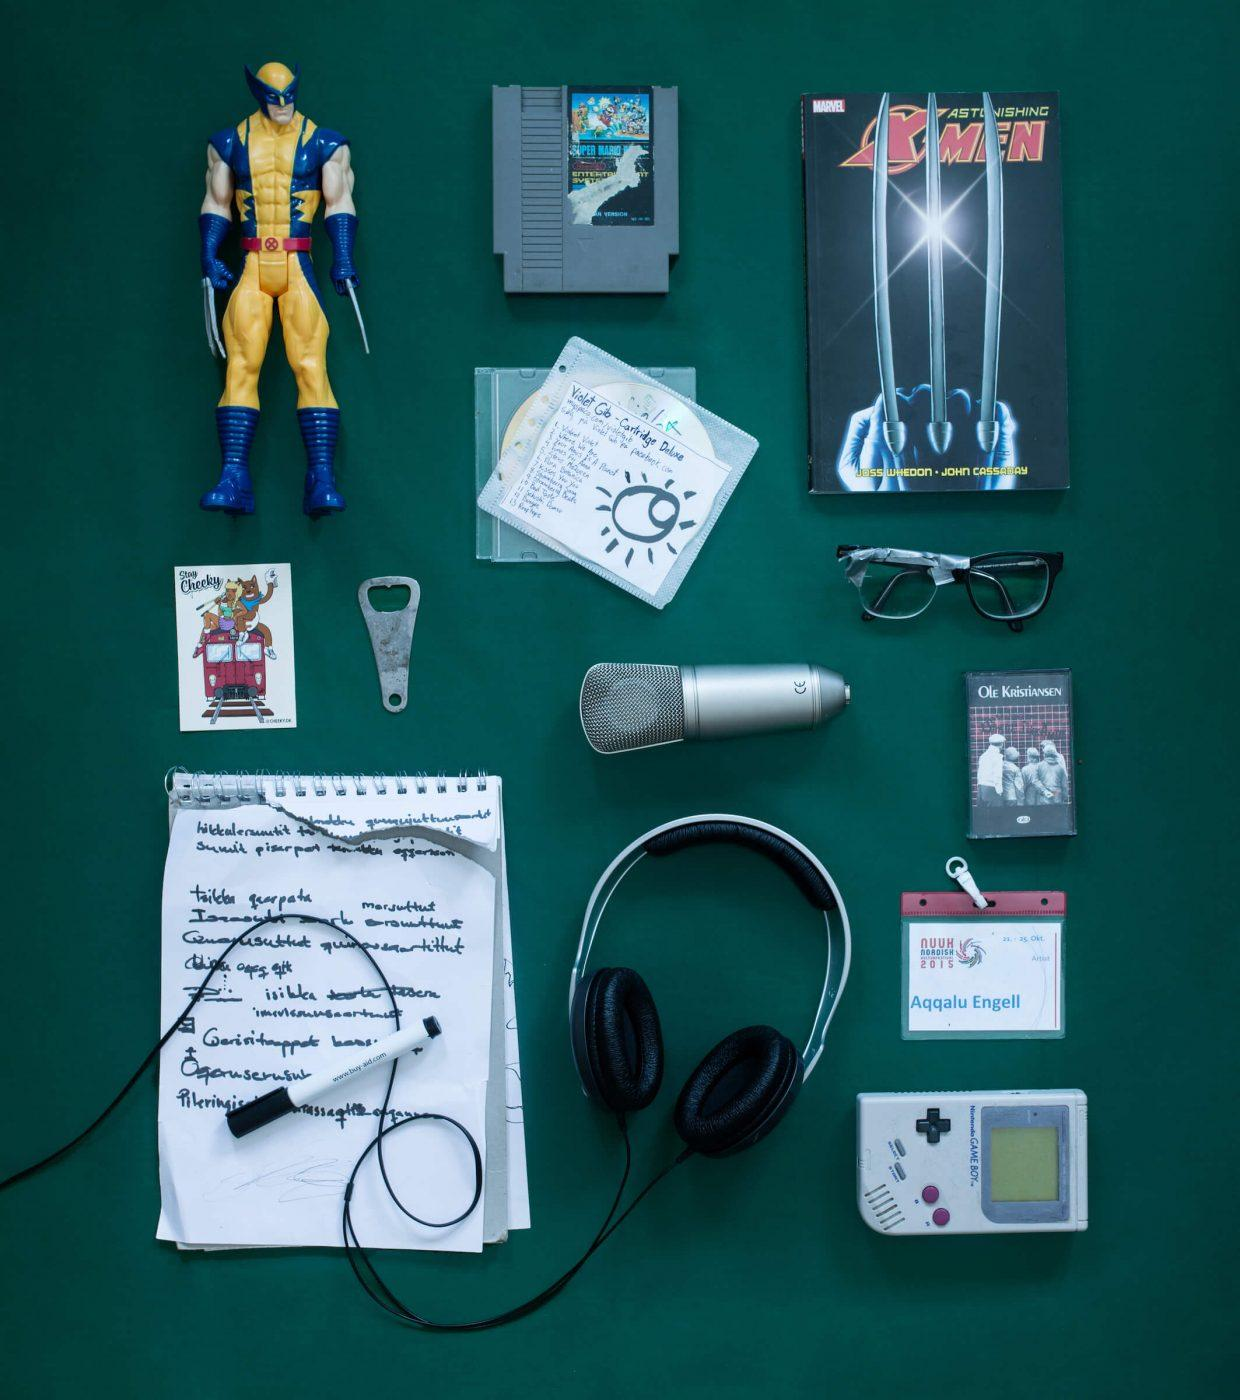 The everyday items of Aqqalu Engell, a greenlandic music producer. Photo by Rebecca Gustafsson